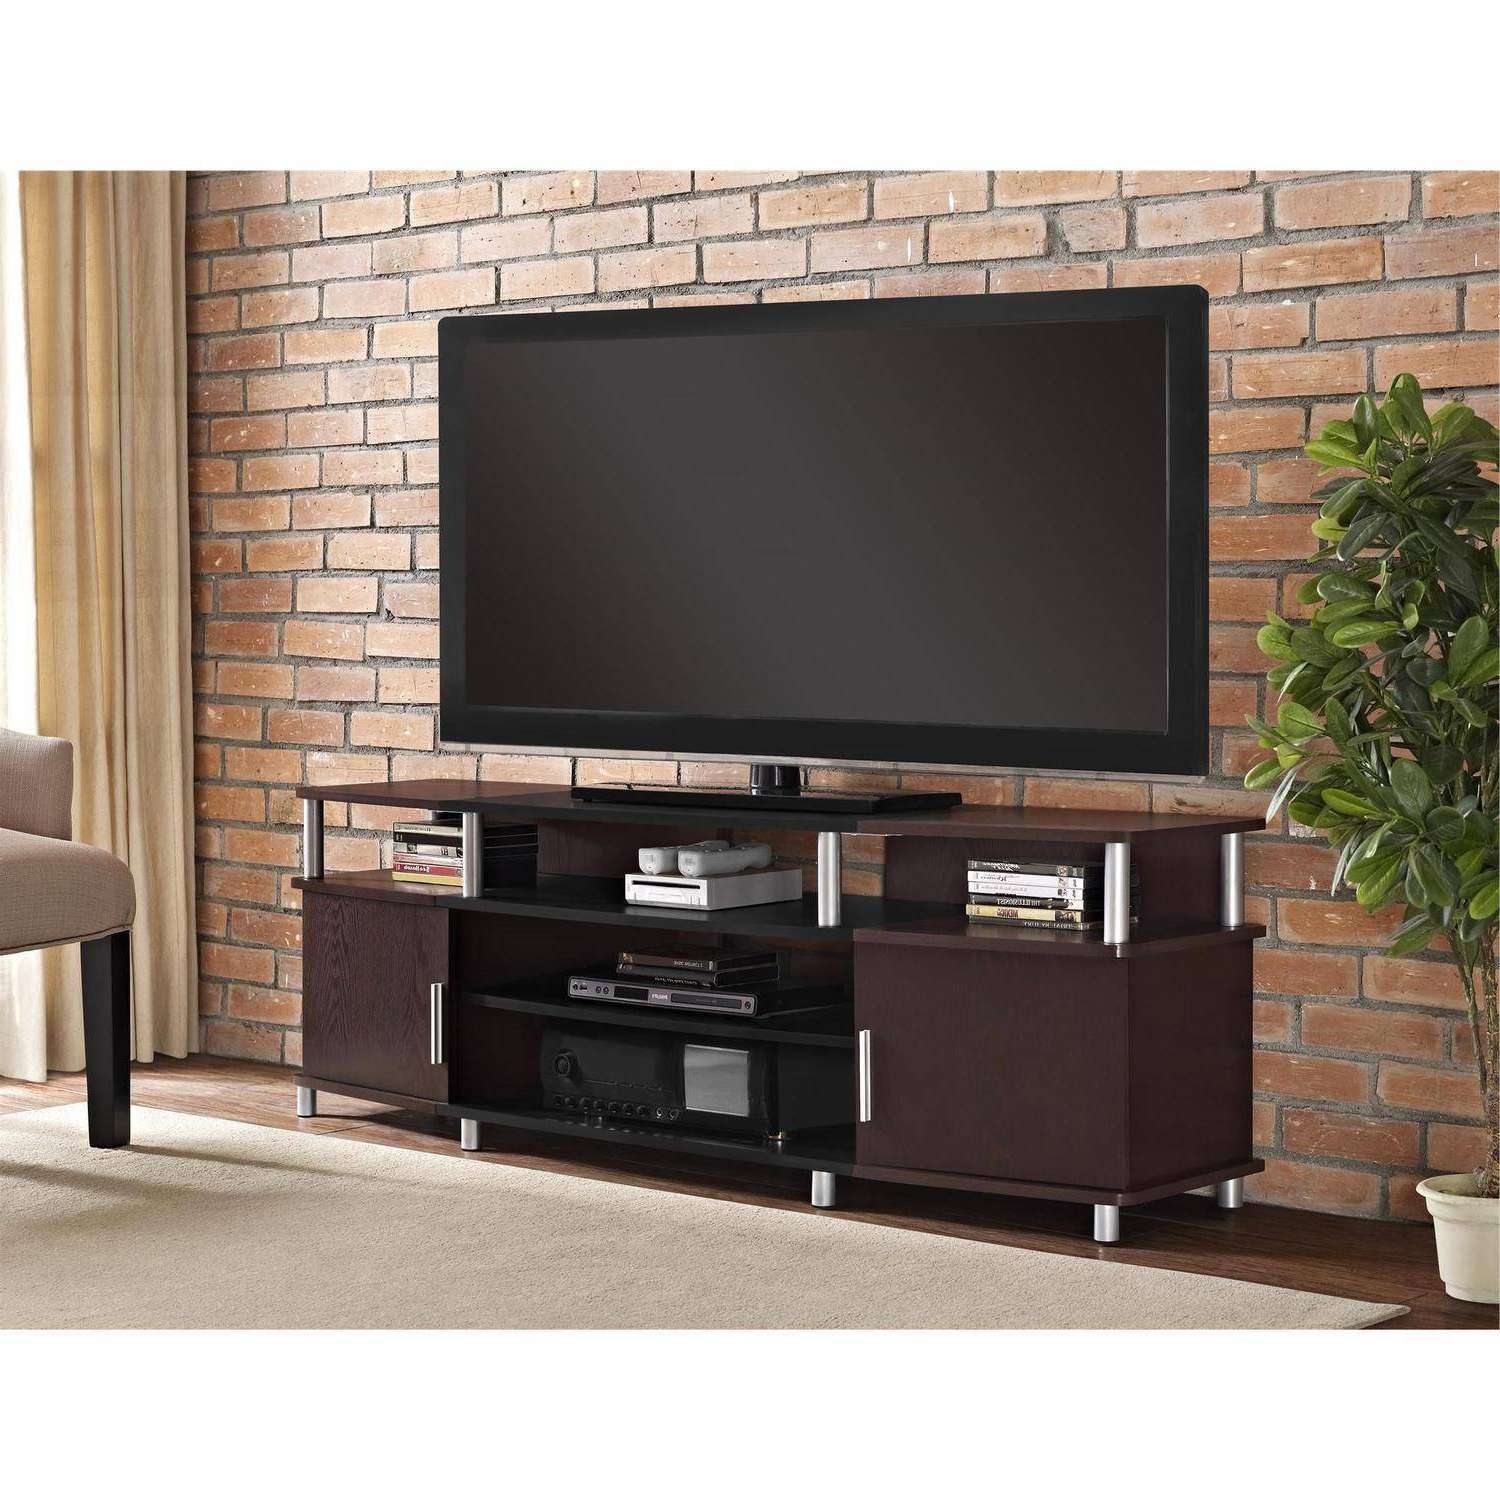 Bedroom Design : Amazing Long Tv Stand White Corner Tv Unit 60 Pertaining To Corner 60 Inch Tv Stands (View 2 of 15)